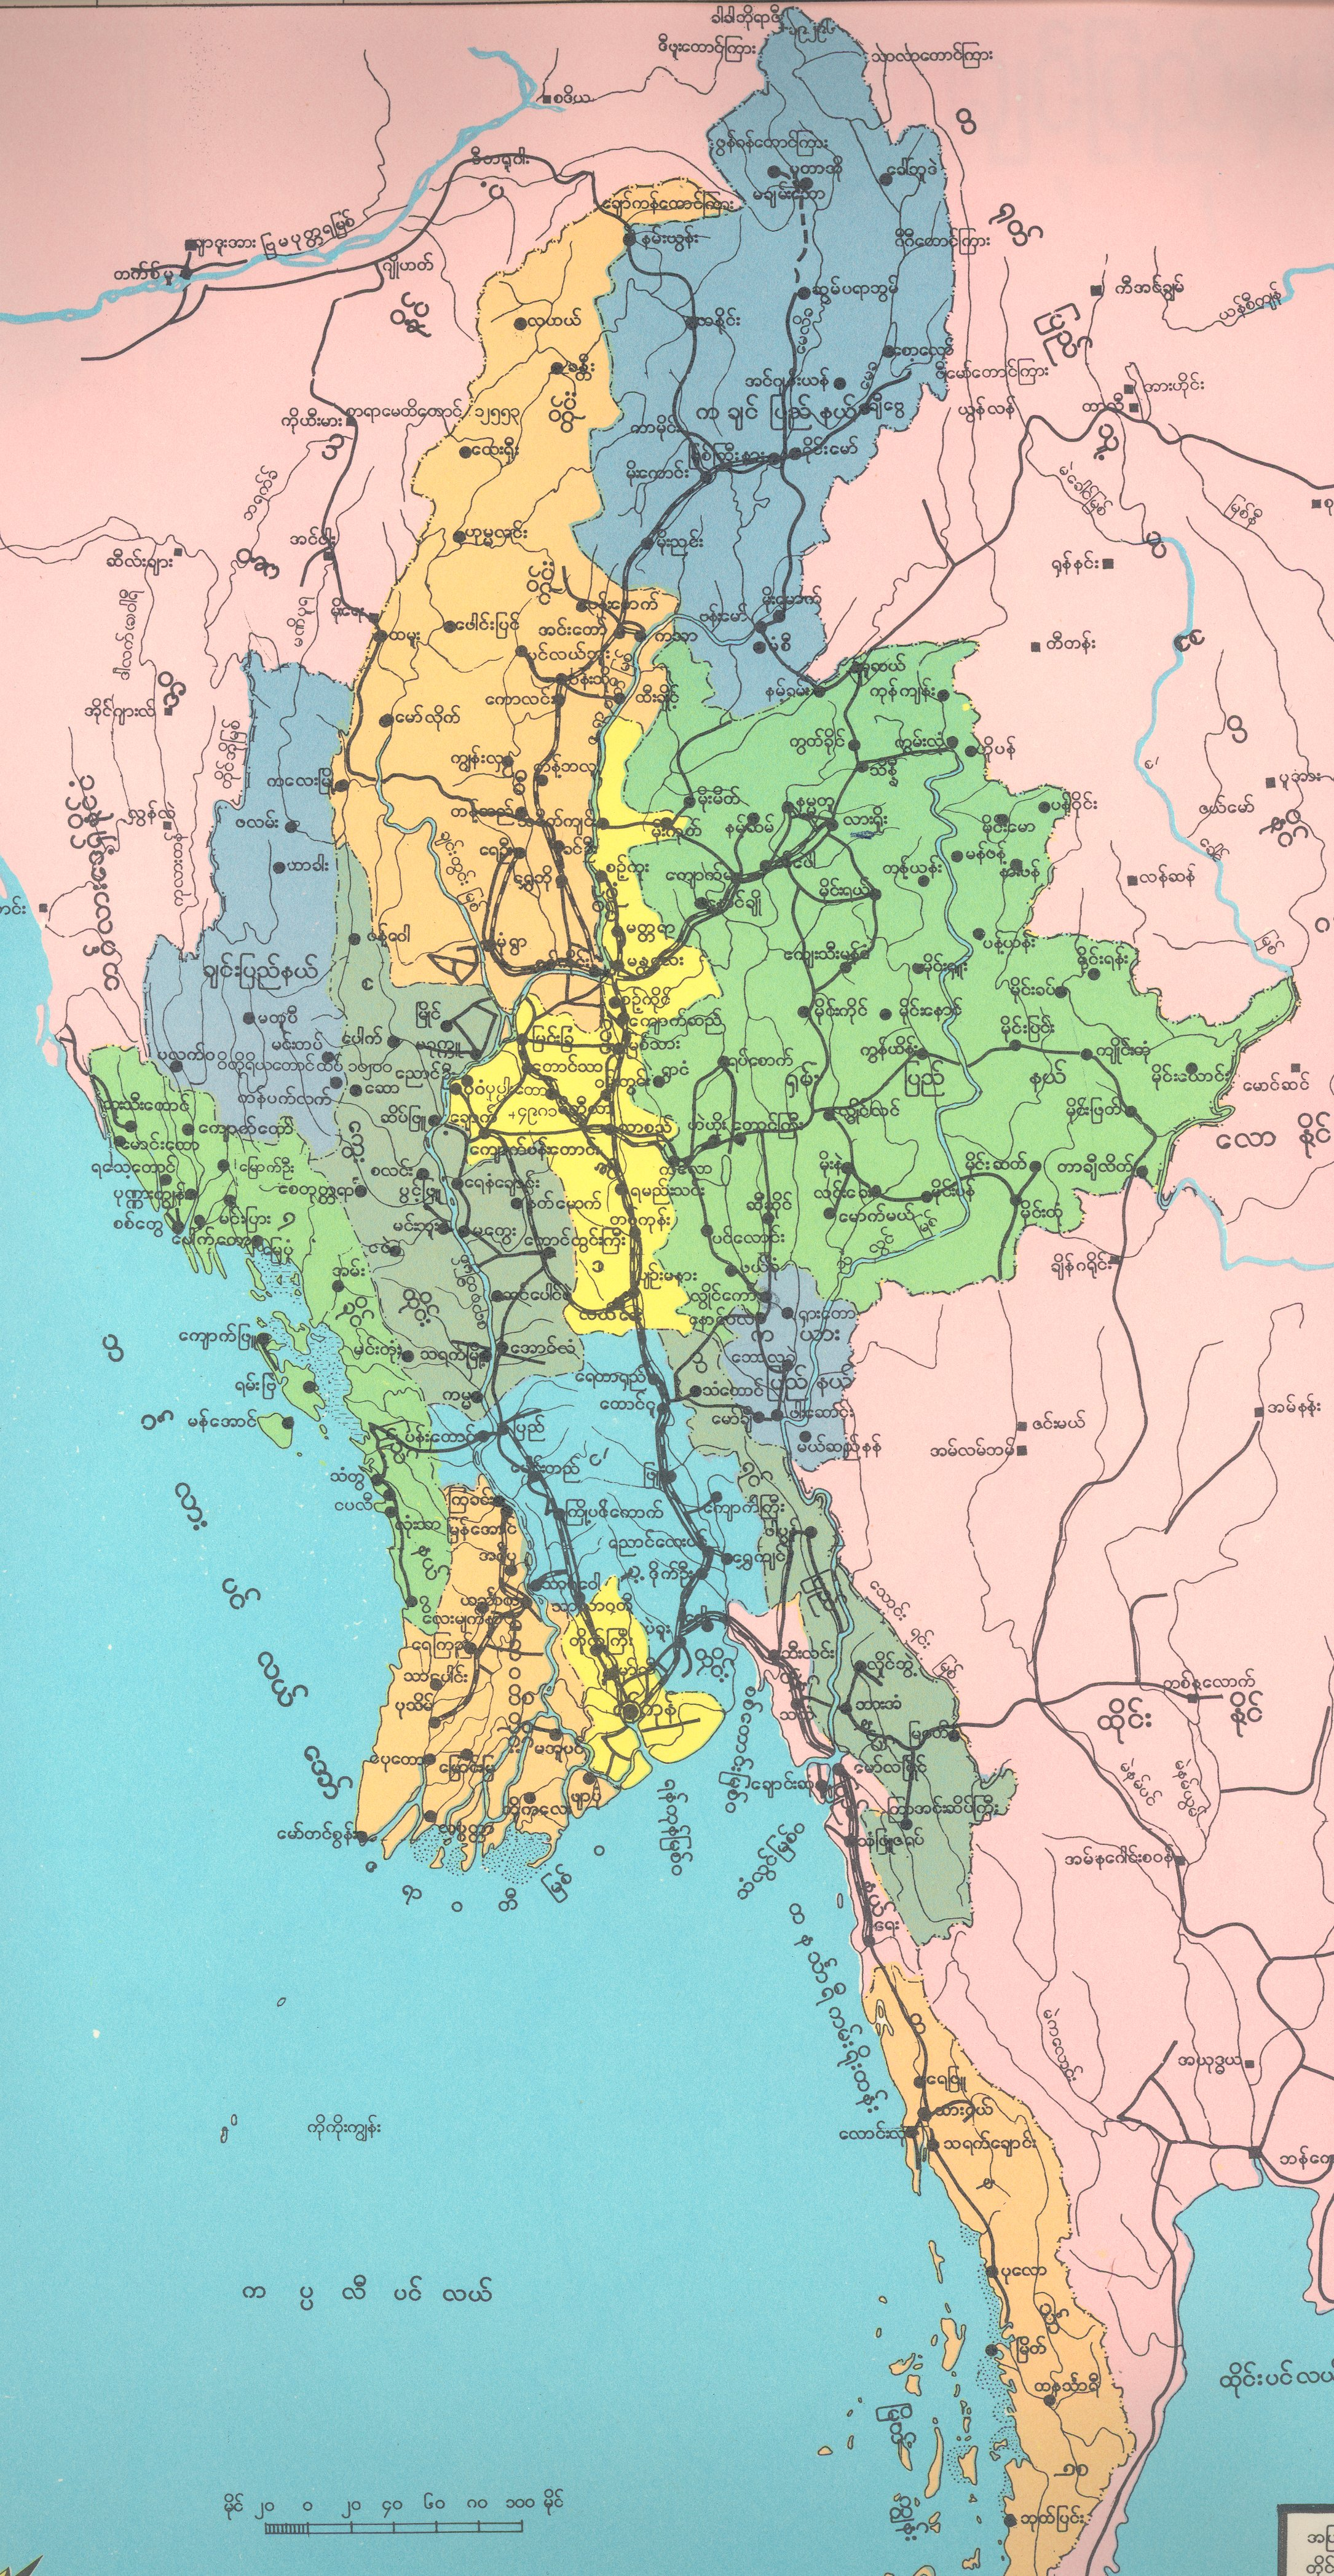 SOAS Wa Dictionary Project Warelated Maps - Myanmar map